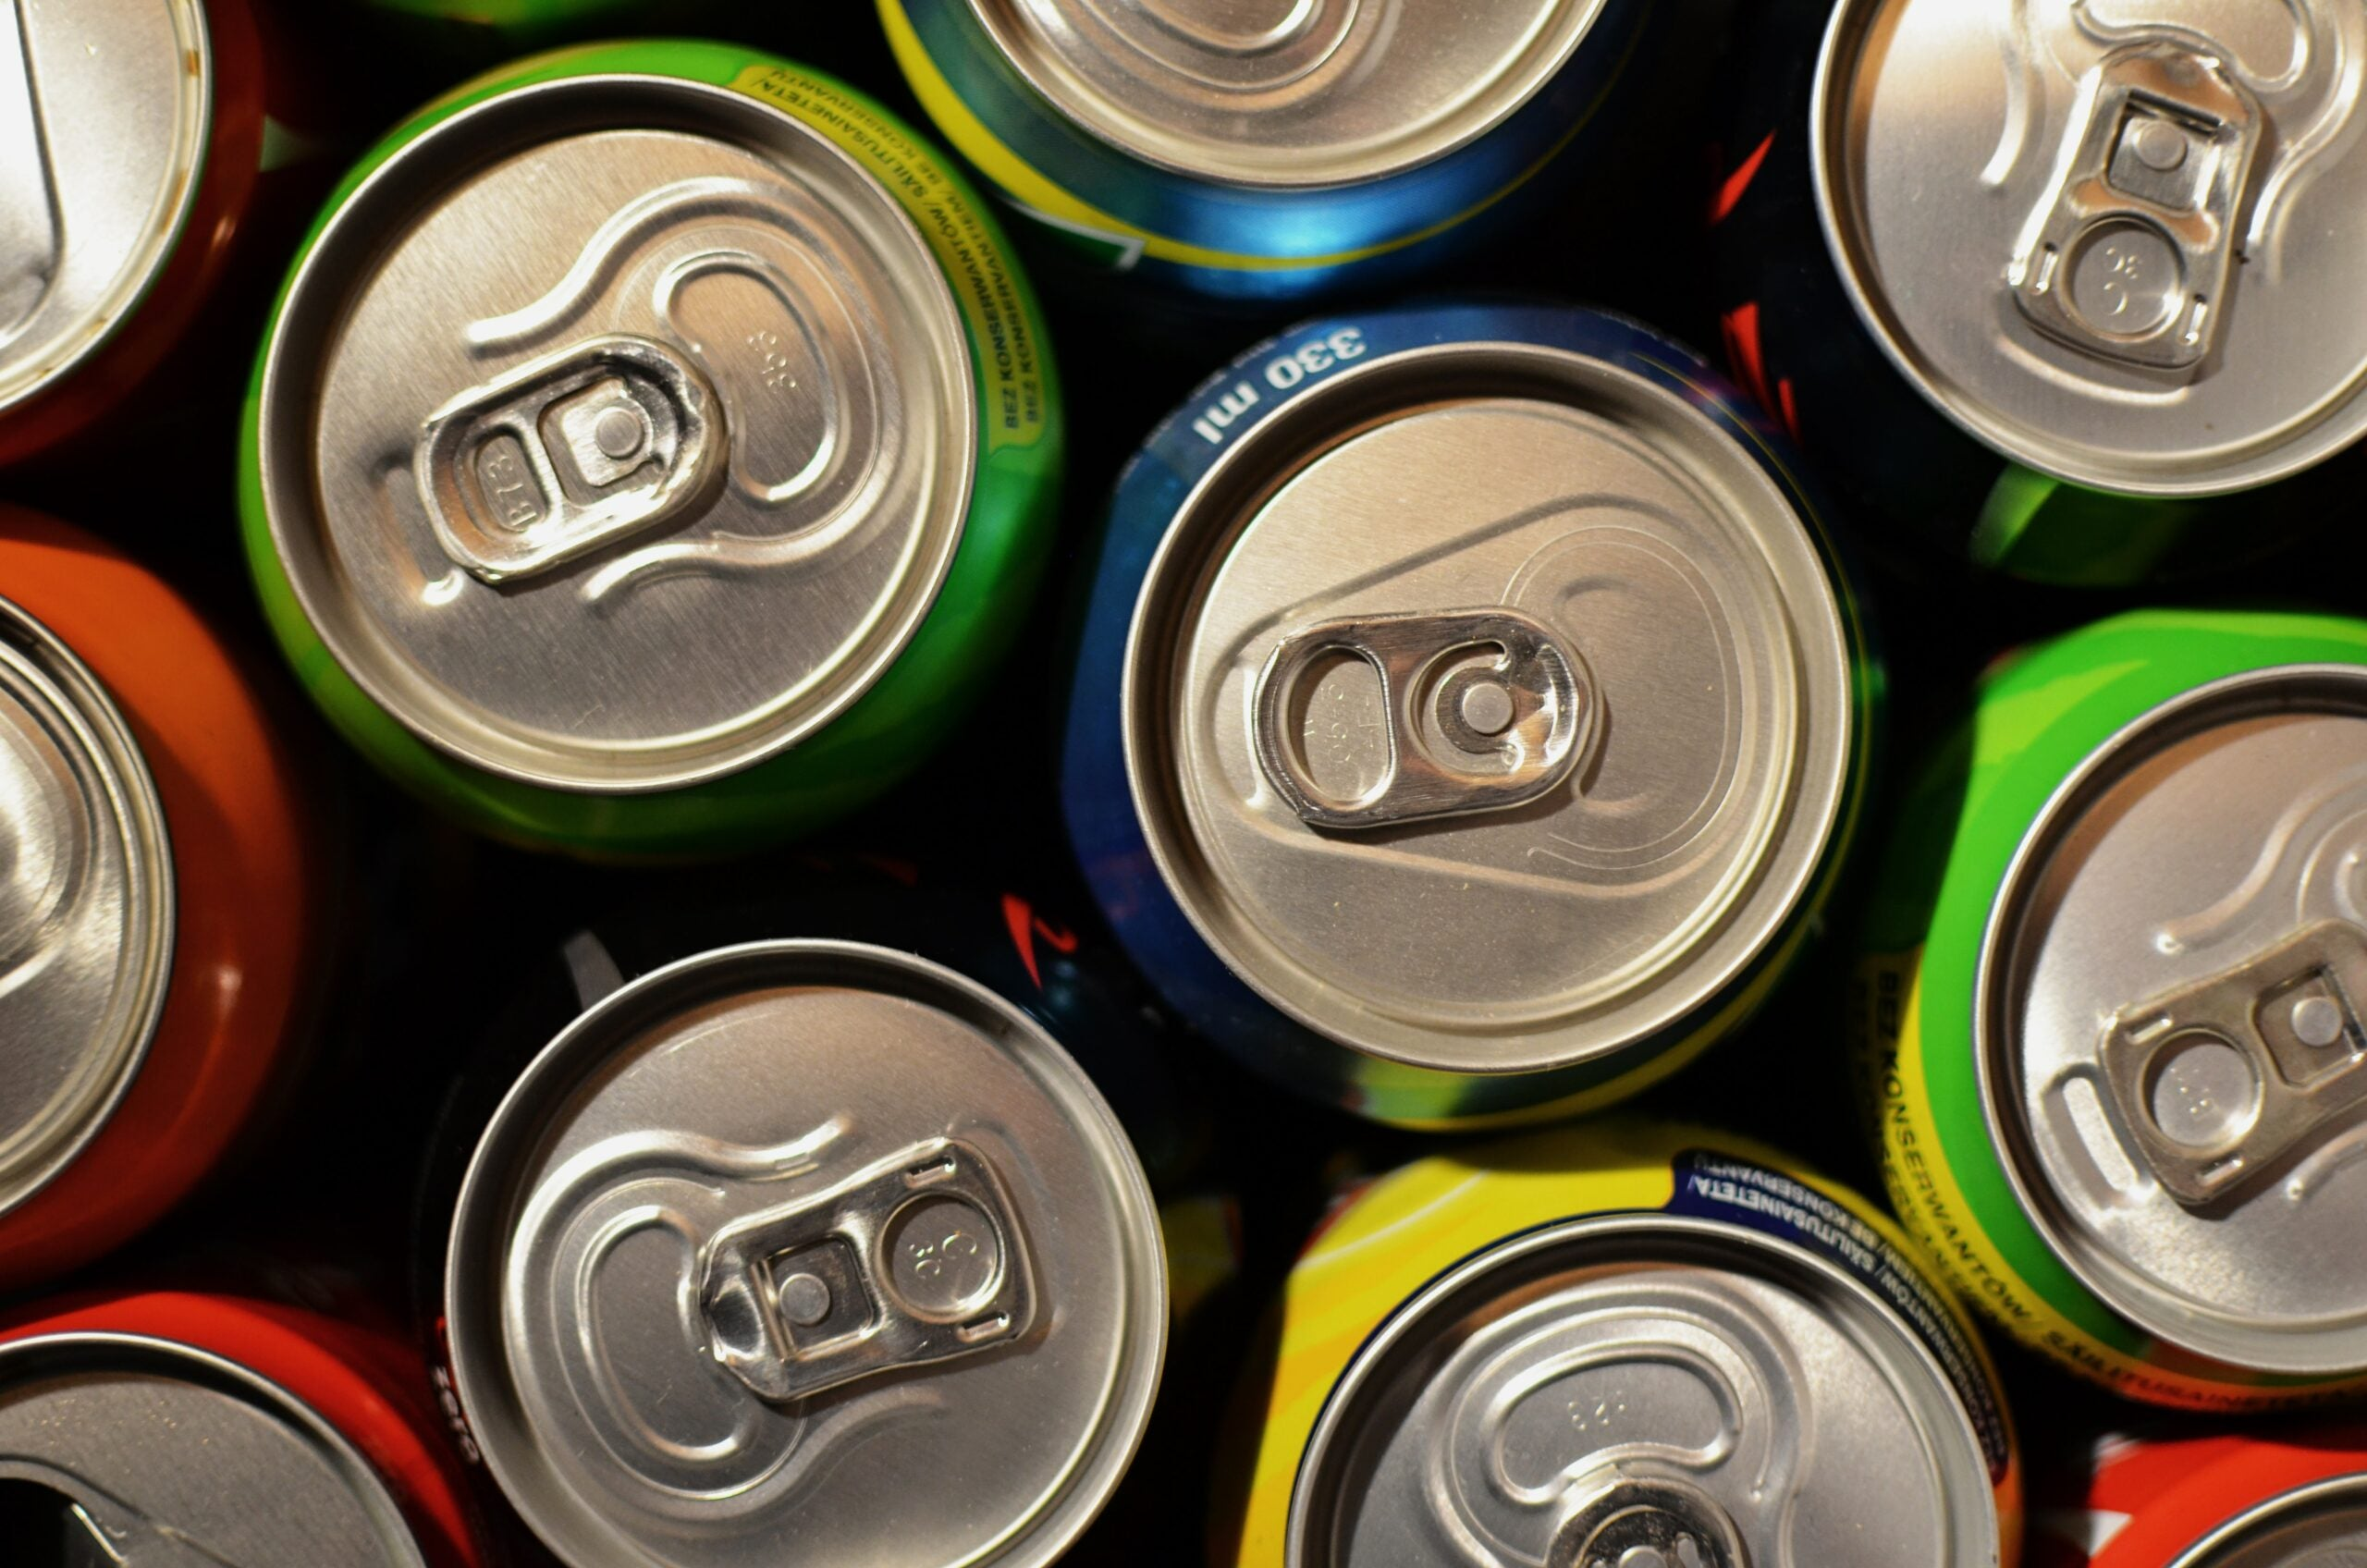 Scientists keep finding new ways energy drinks are terrible for you